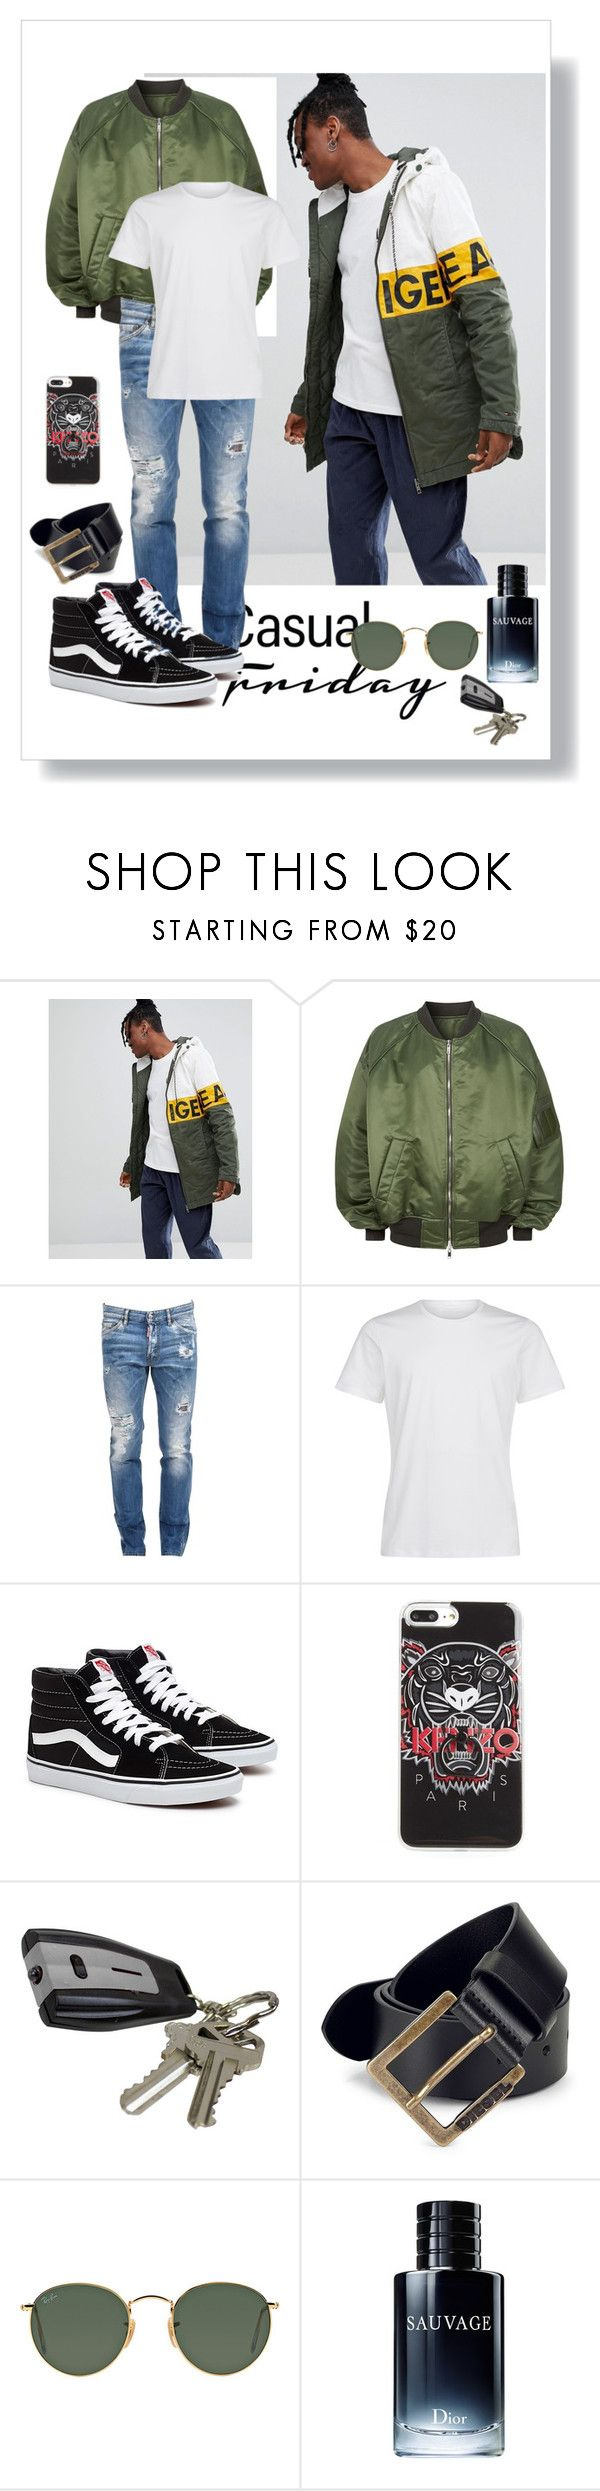 """Casual man"" by gloriouspower ❤ liked on Polyvore featuring Hilfiger Denim, Juun.j, Dsquared2, La Perla, Kenzo, J.B. Nifty, Diesel, Ray-Ban, John Lewis and men's fashion"